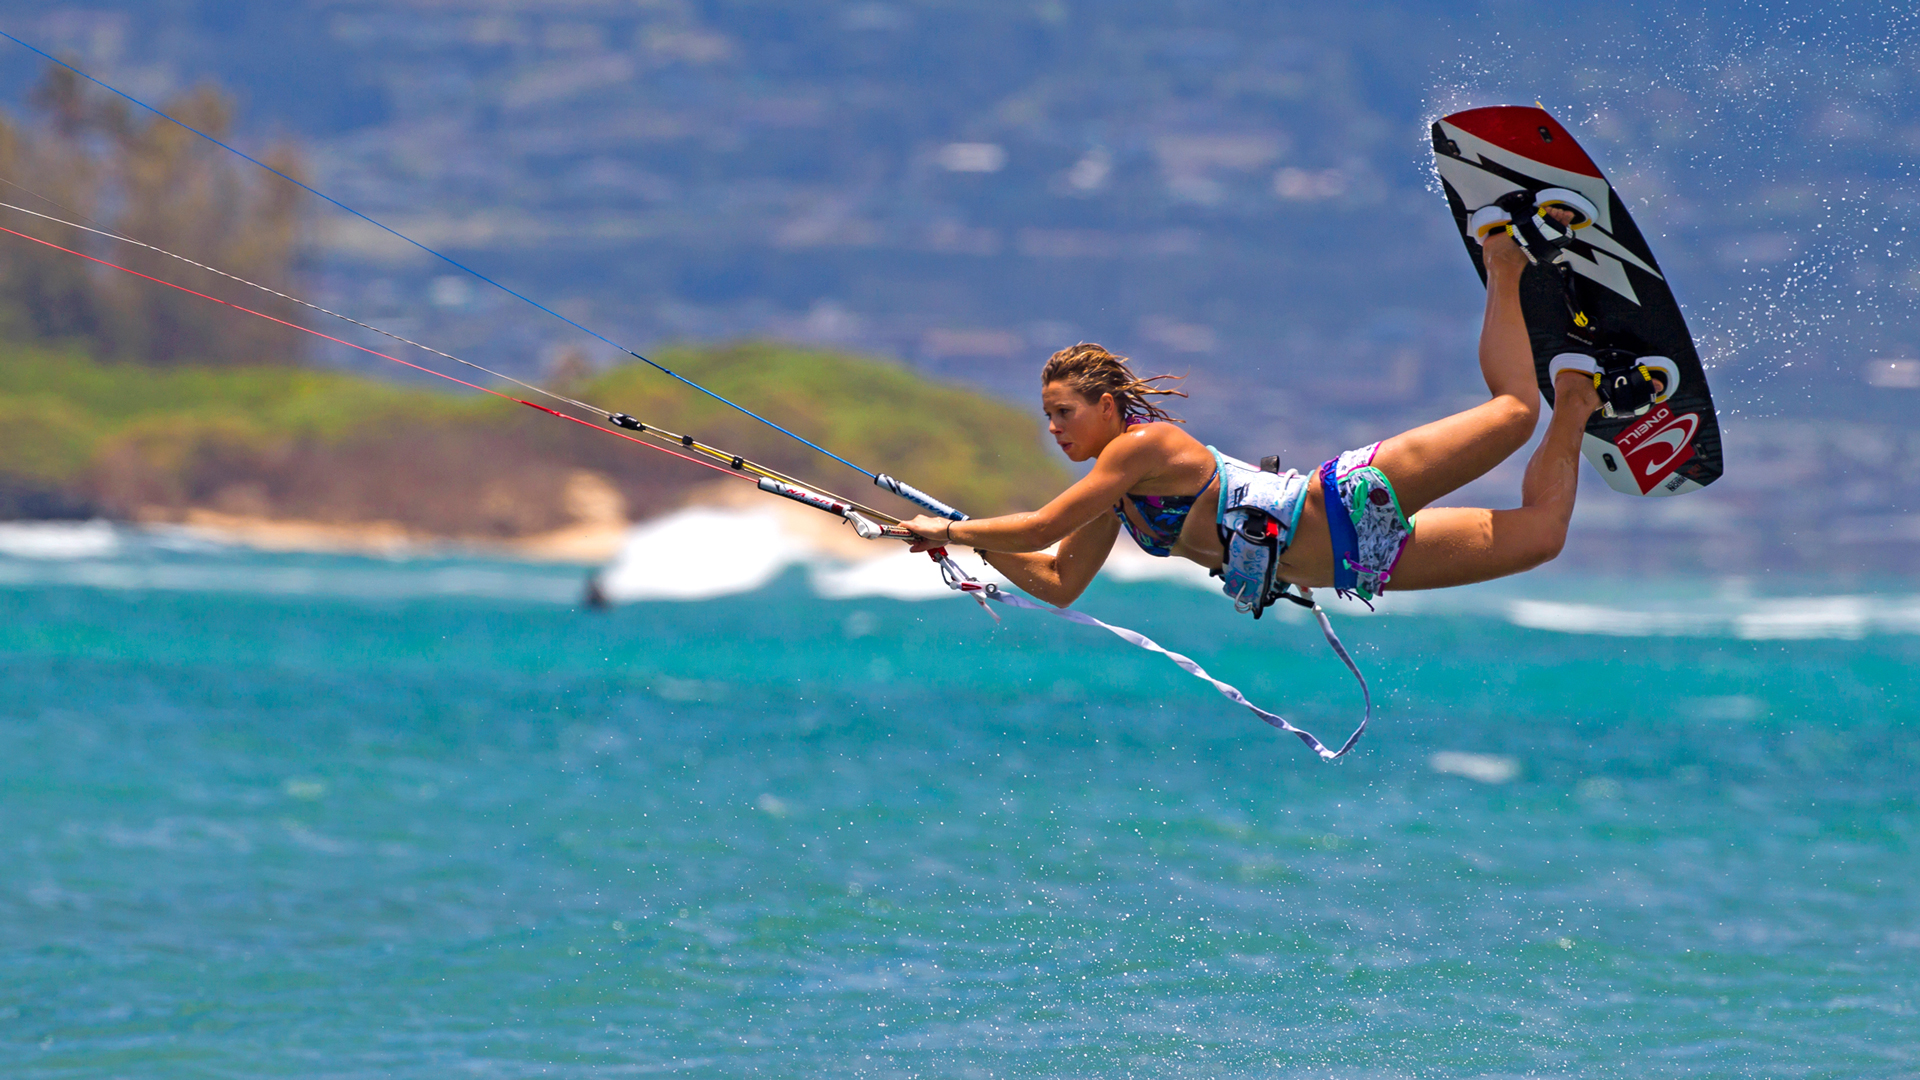 kitesurf wallpaper image - Jalou Langeree popping a raily - in resolution: High Definition - HD 16:9 1920 X 1080